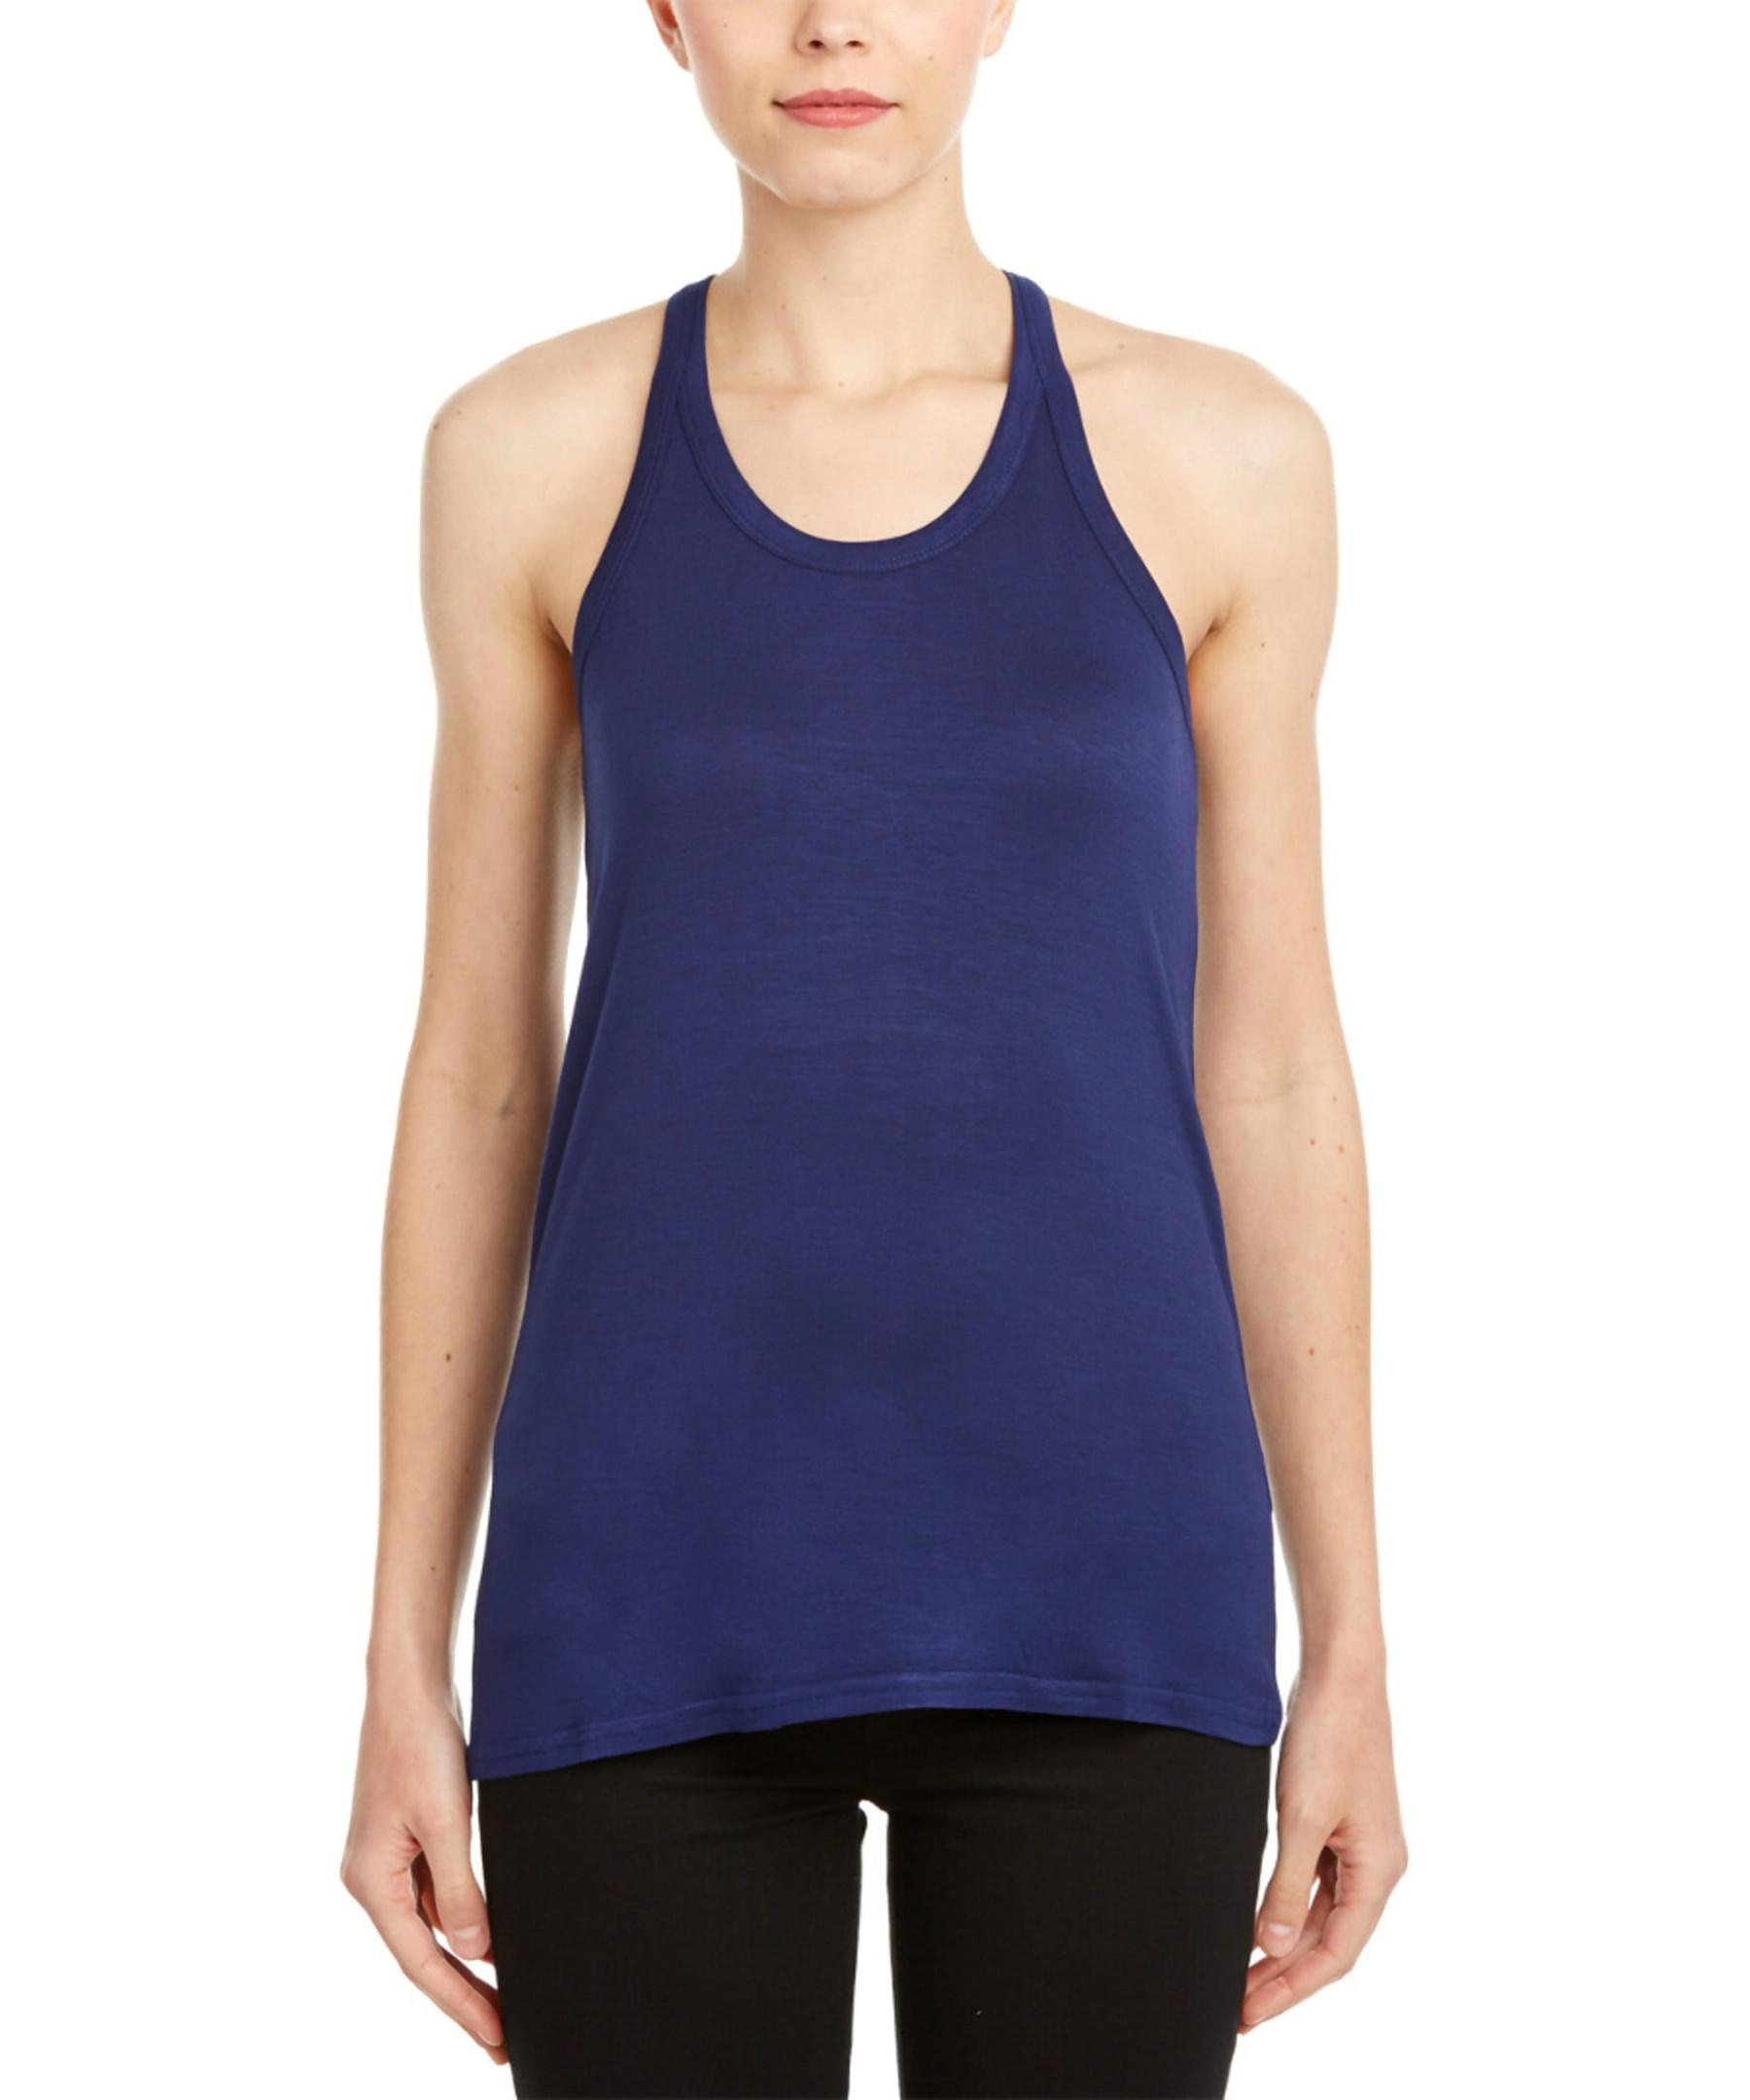 Macbeth Collection Racerback Tank Top In Blue Lyst